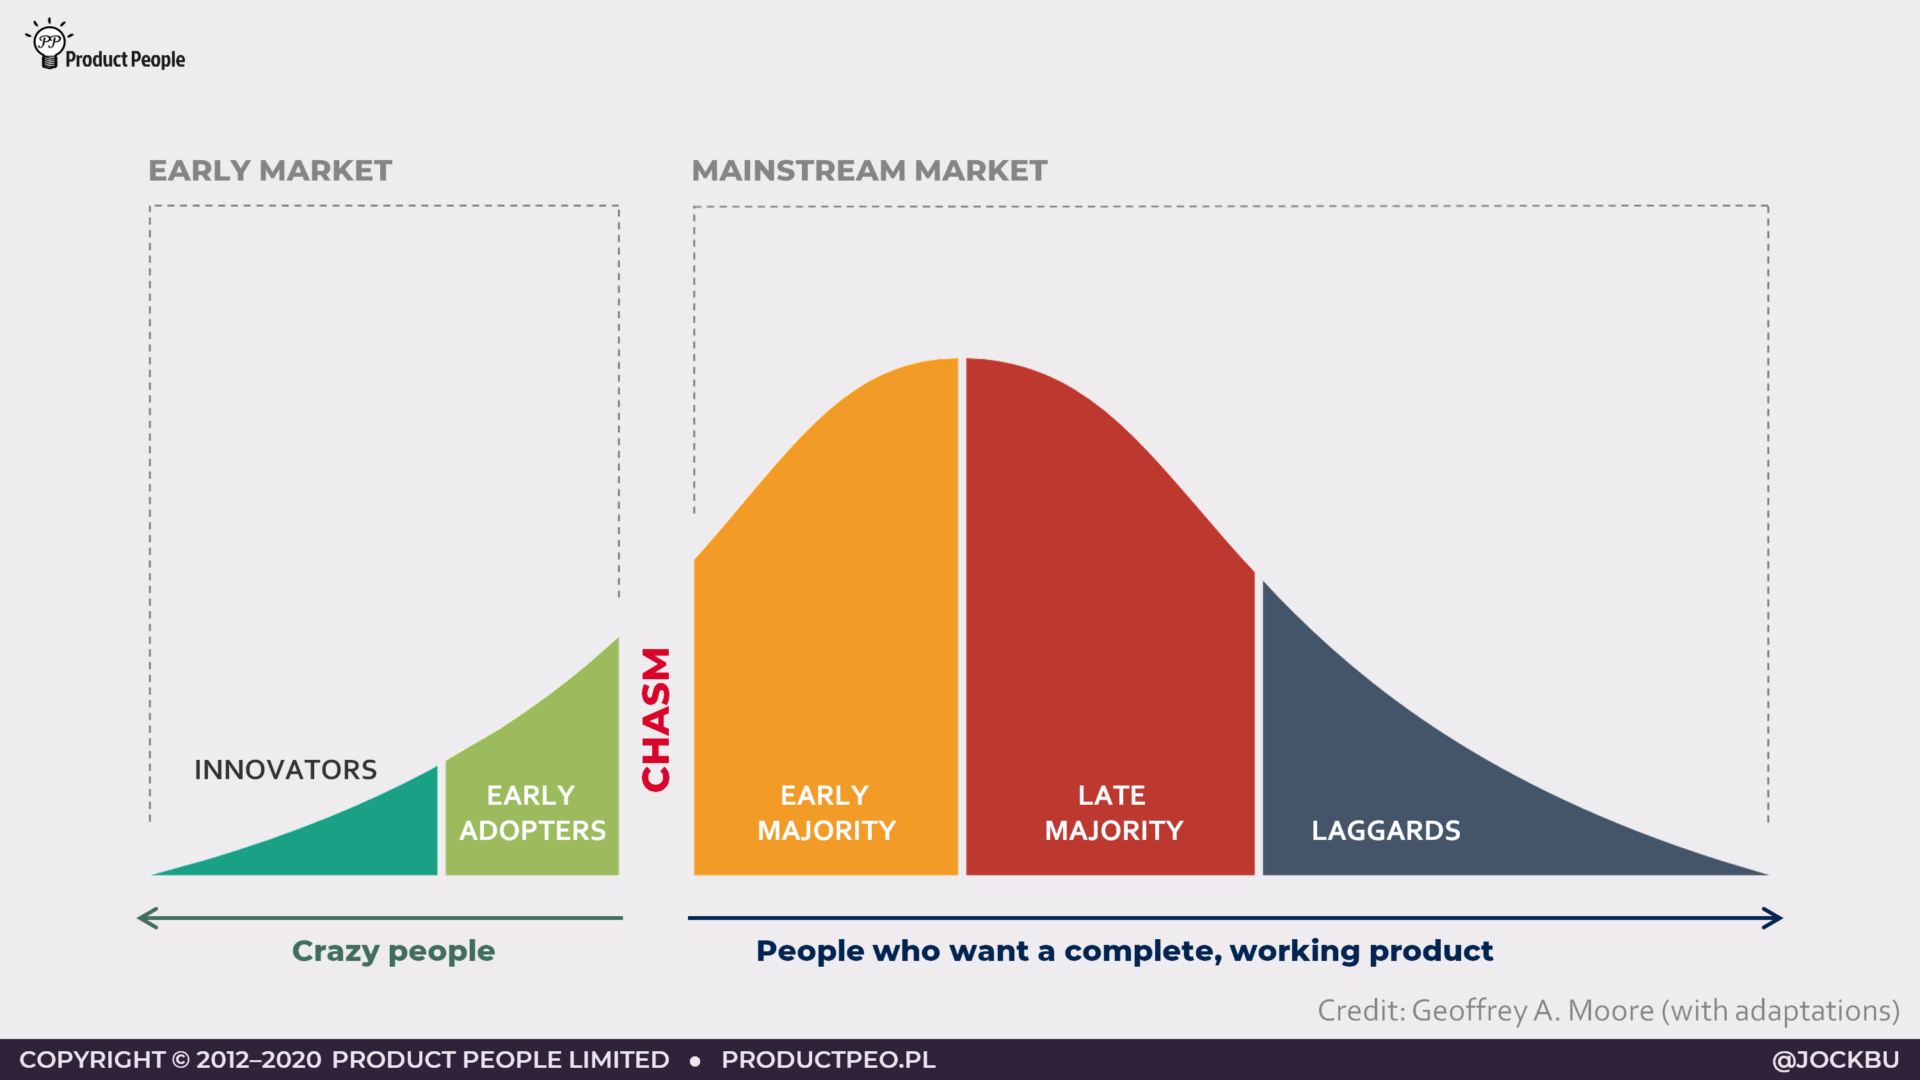 Crossing the chasm - the six stages of product adoption (Credit Geoffrey Moore, with adaptions)